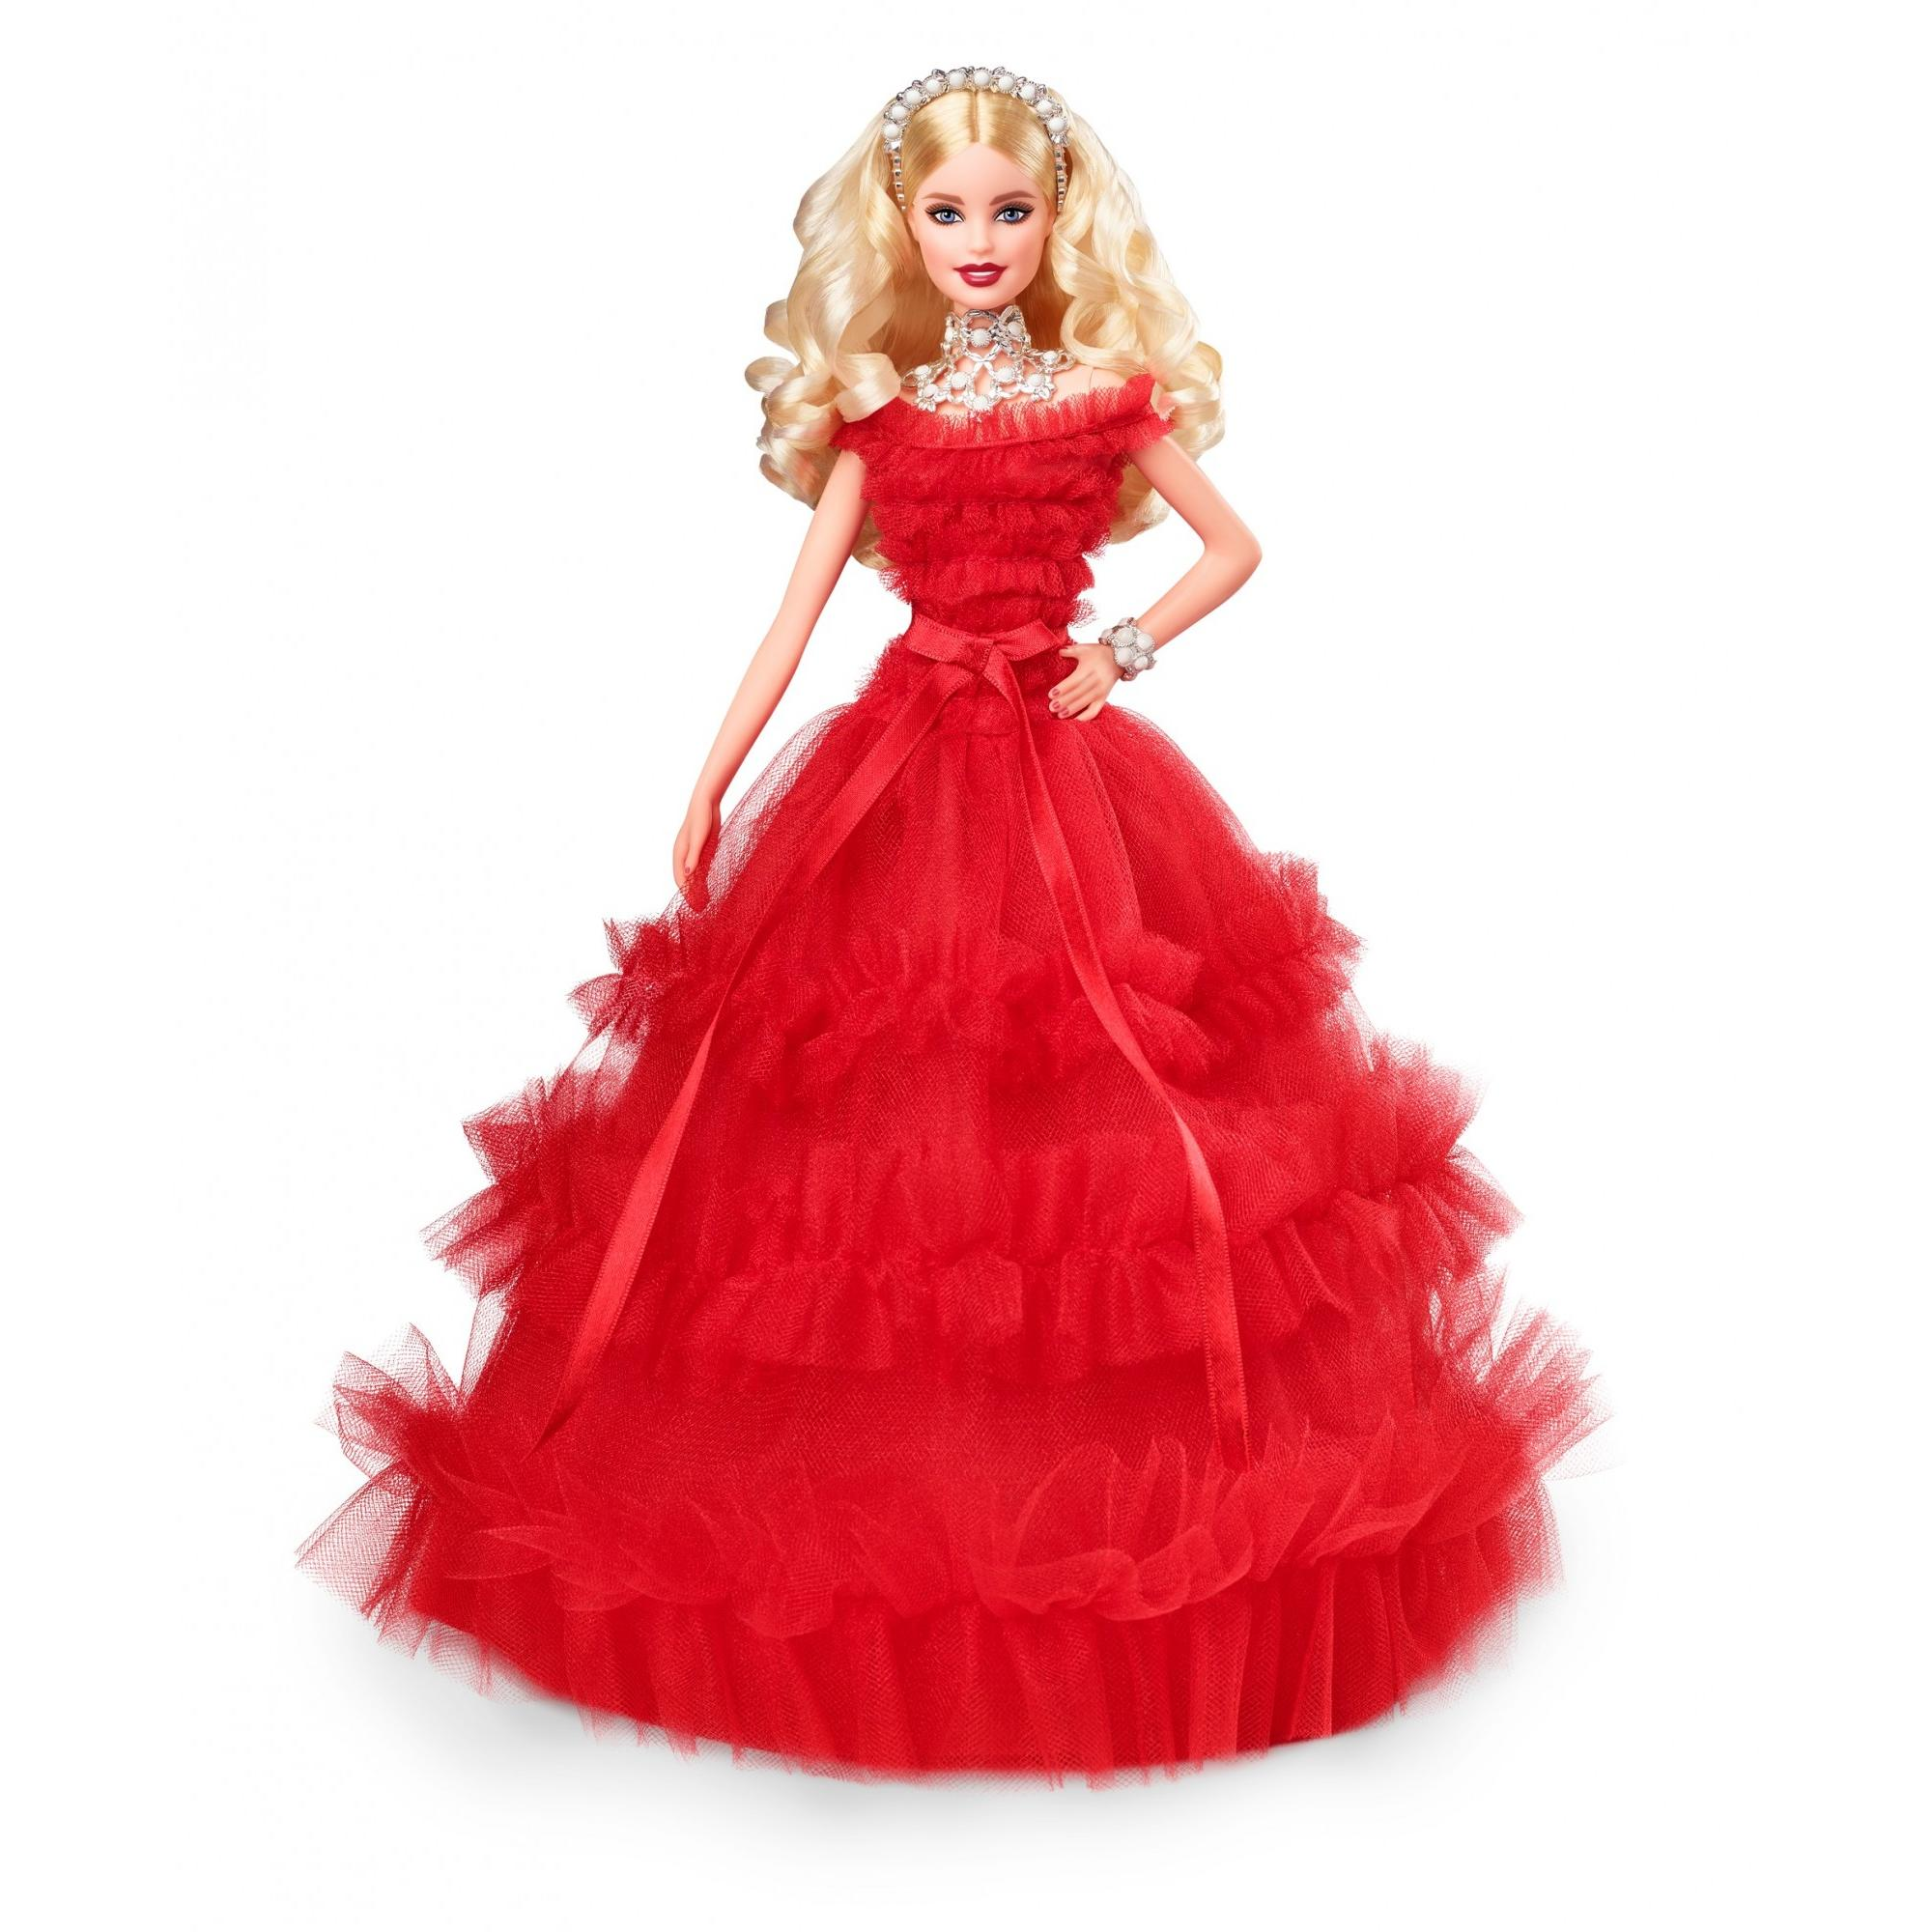 2018 Holiday Collector Barbie Signature Doll with Stand by Barbie